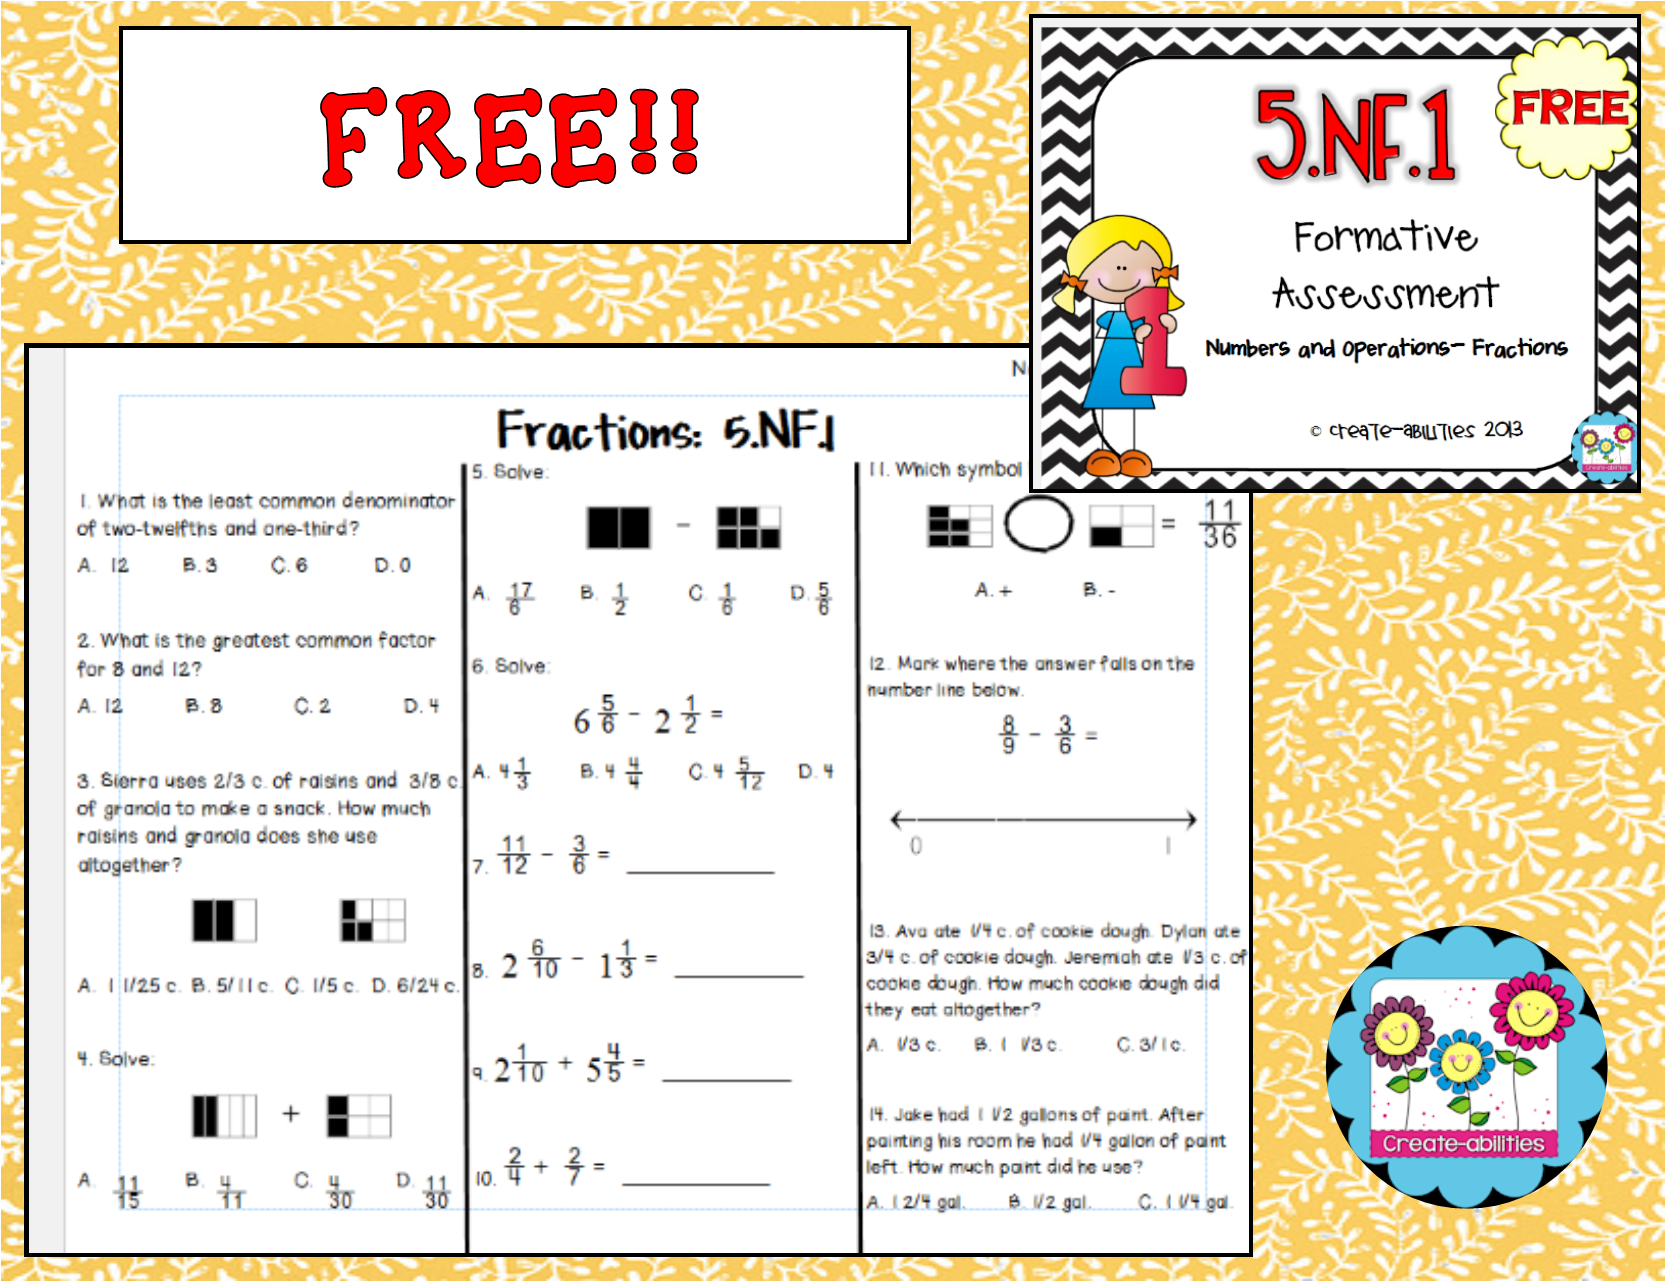 Free 5 1 Formative Assessment And Answer Key A Free